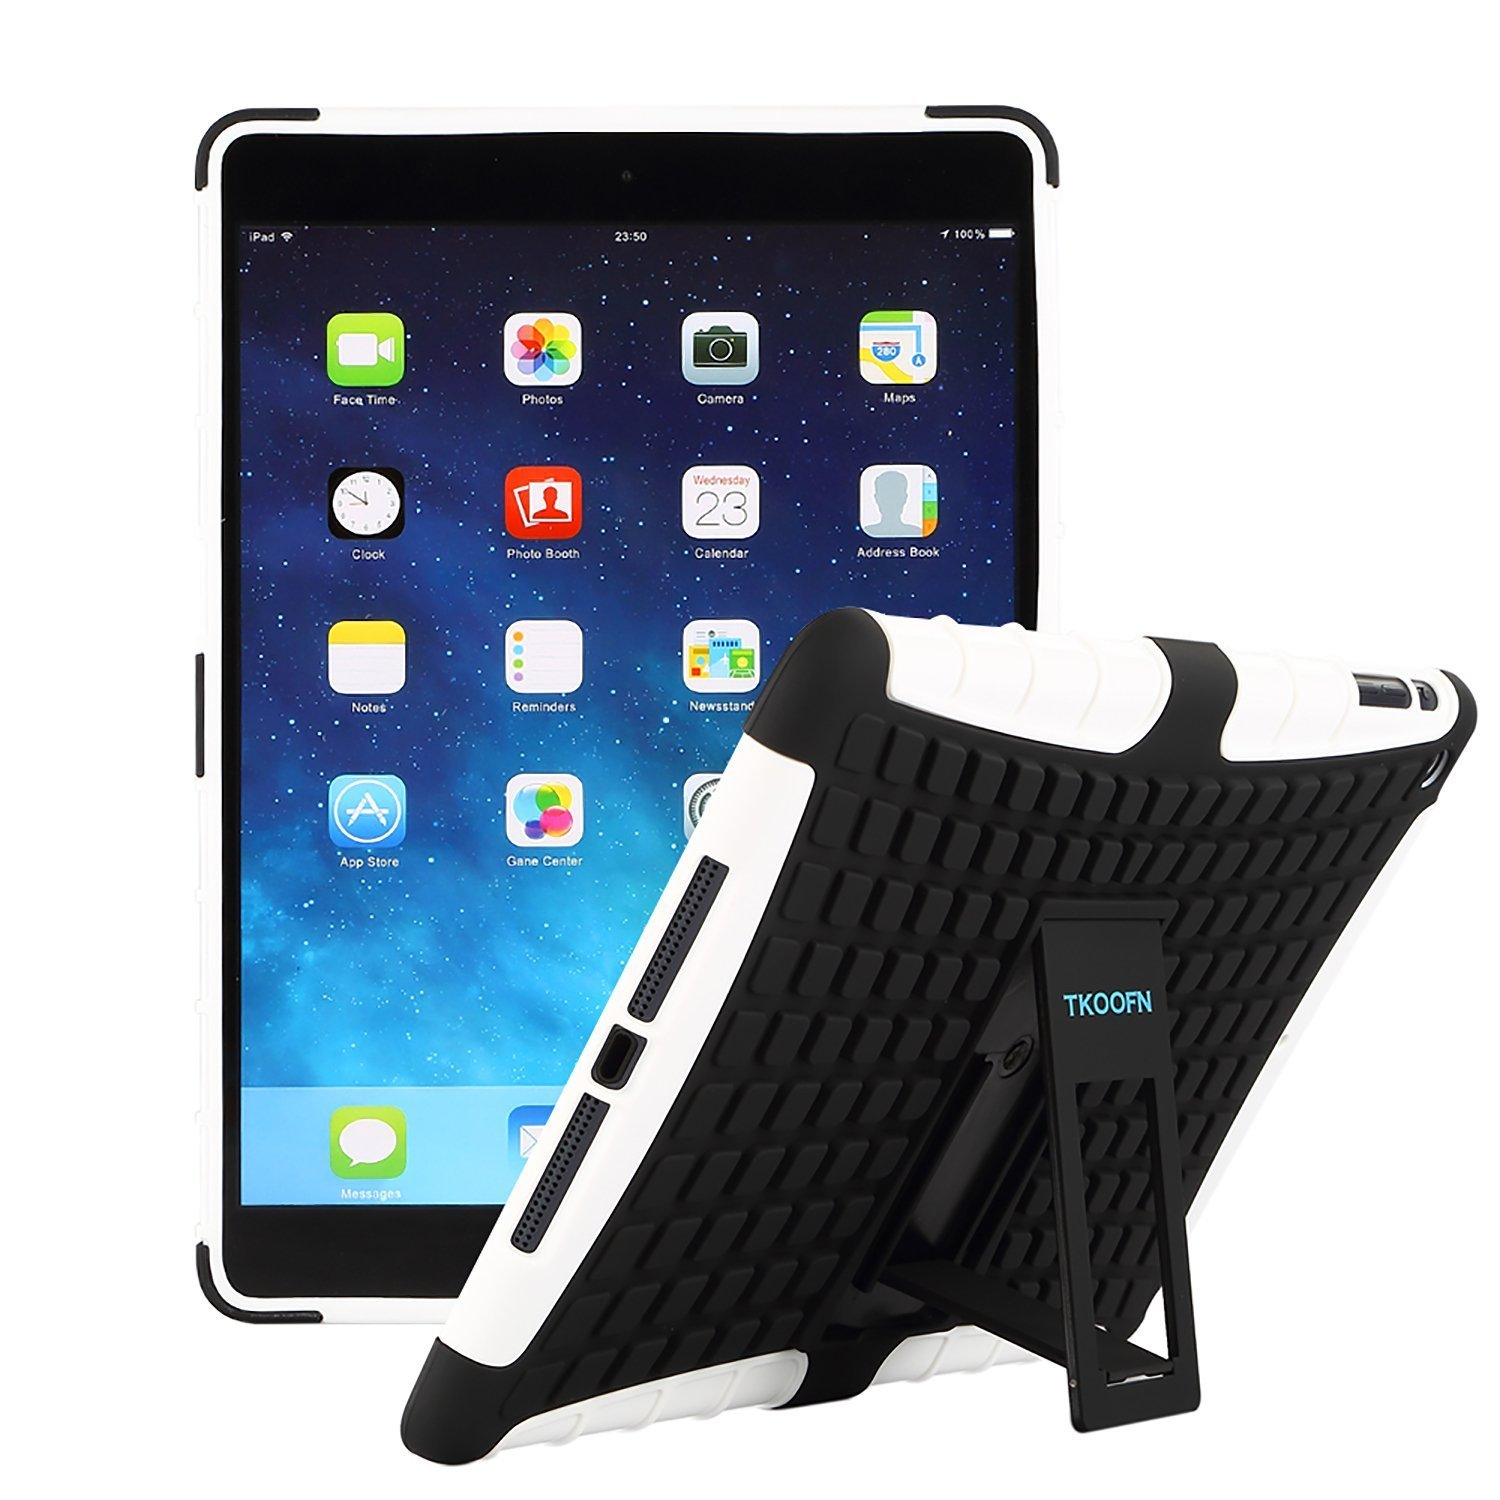 TKOOFN Heavy Duty Tough Shockproof with Stand Hard Case Cover For Apple iPad Air 2 Launched Oct. 2014 Free Cleaning Cloth Free Screen Protector PT5160 + Free Stylus Touch Pen Black